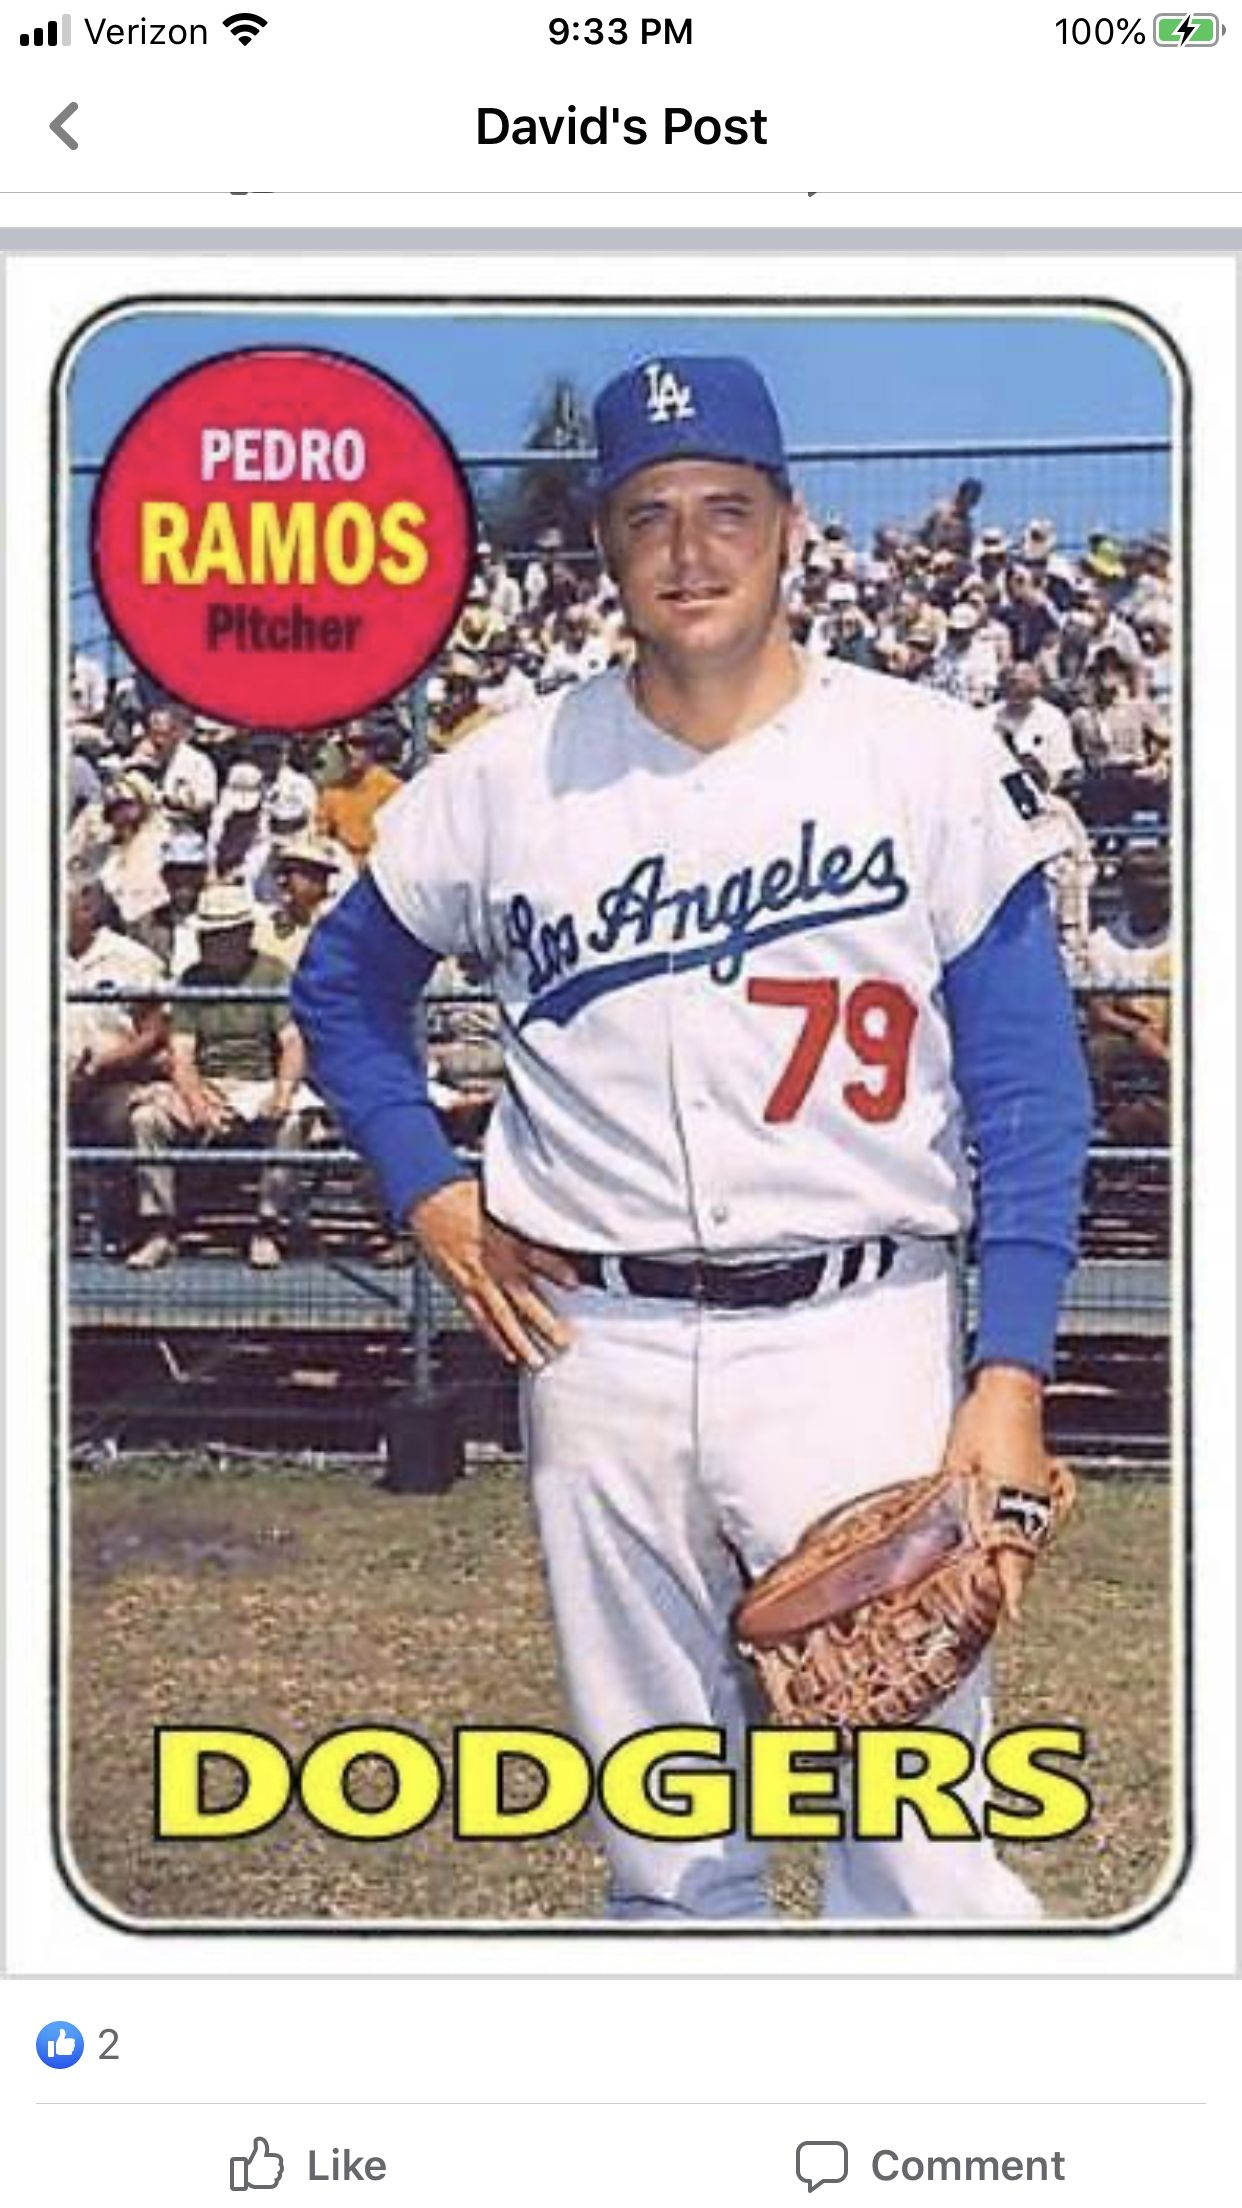 Pin By Empty On 1969 Dodgers In 2020 Los Angeles Dodgers Baseball Dodgers Baseball Baseball Cards